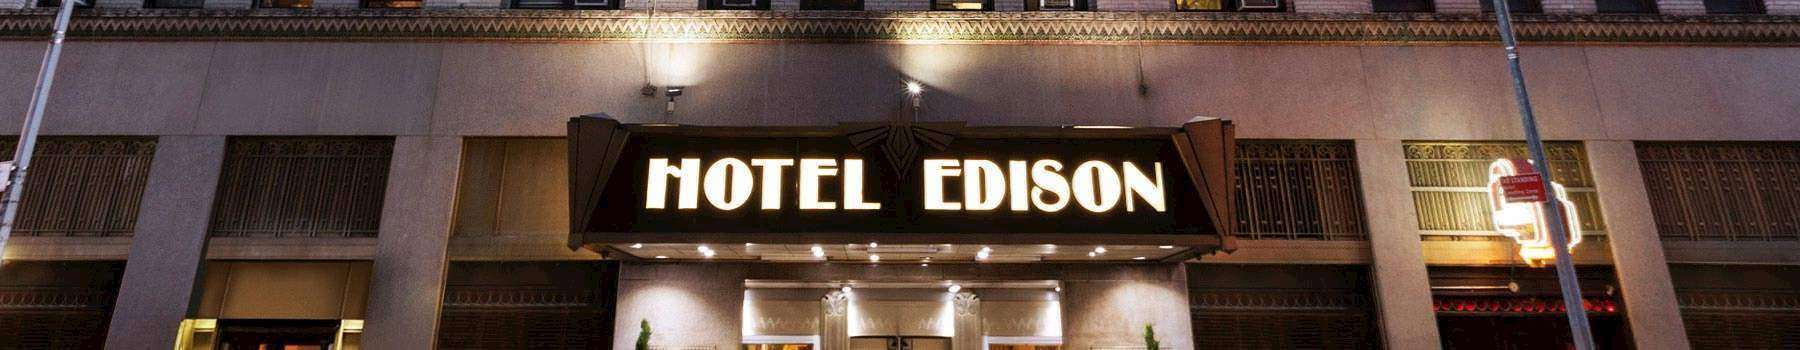 The Show Must Go On! - hotel edison